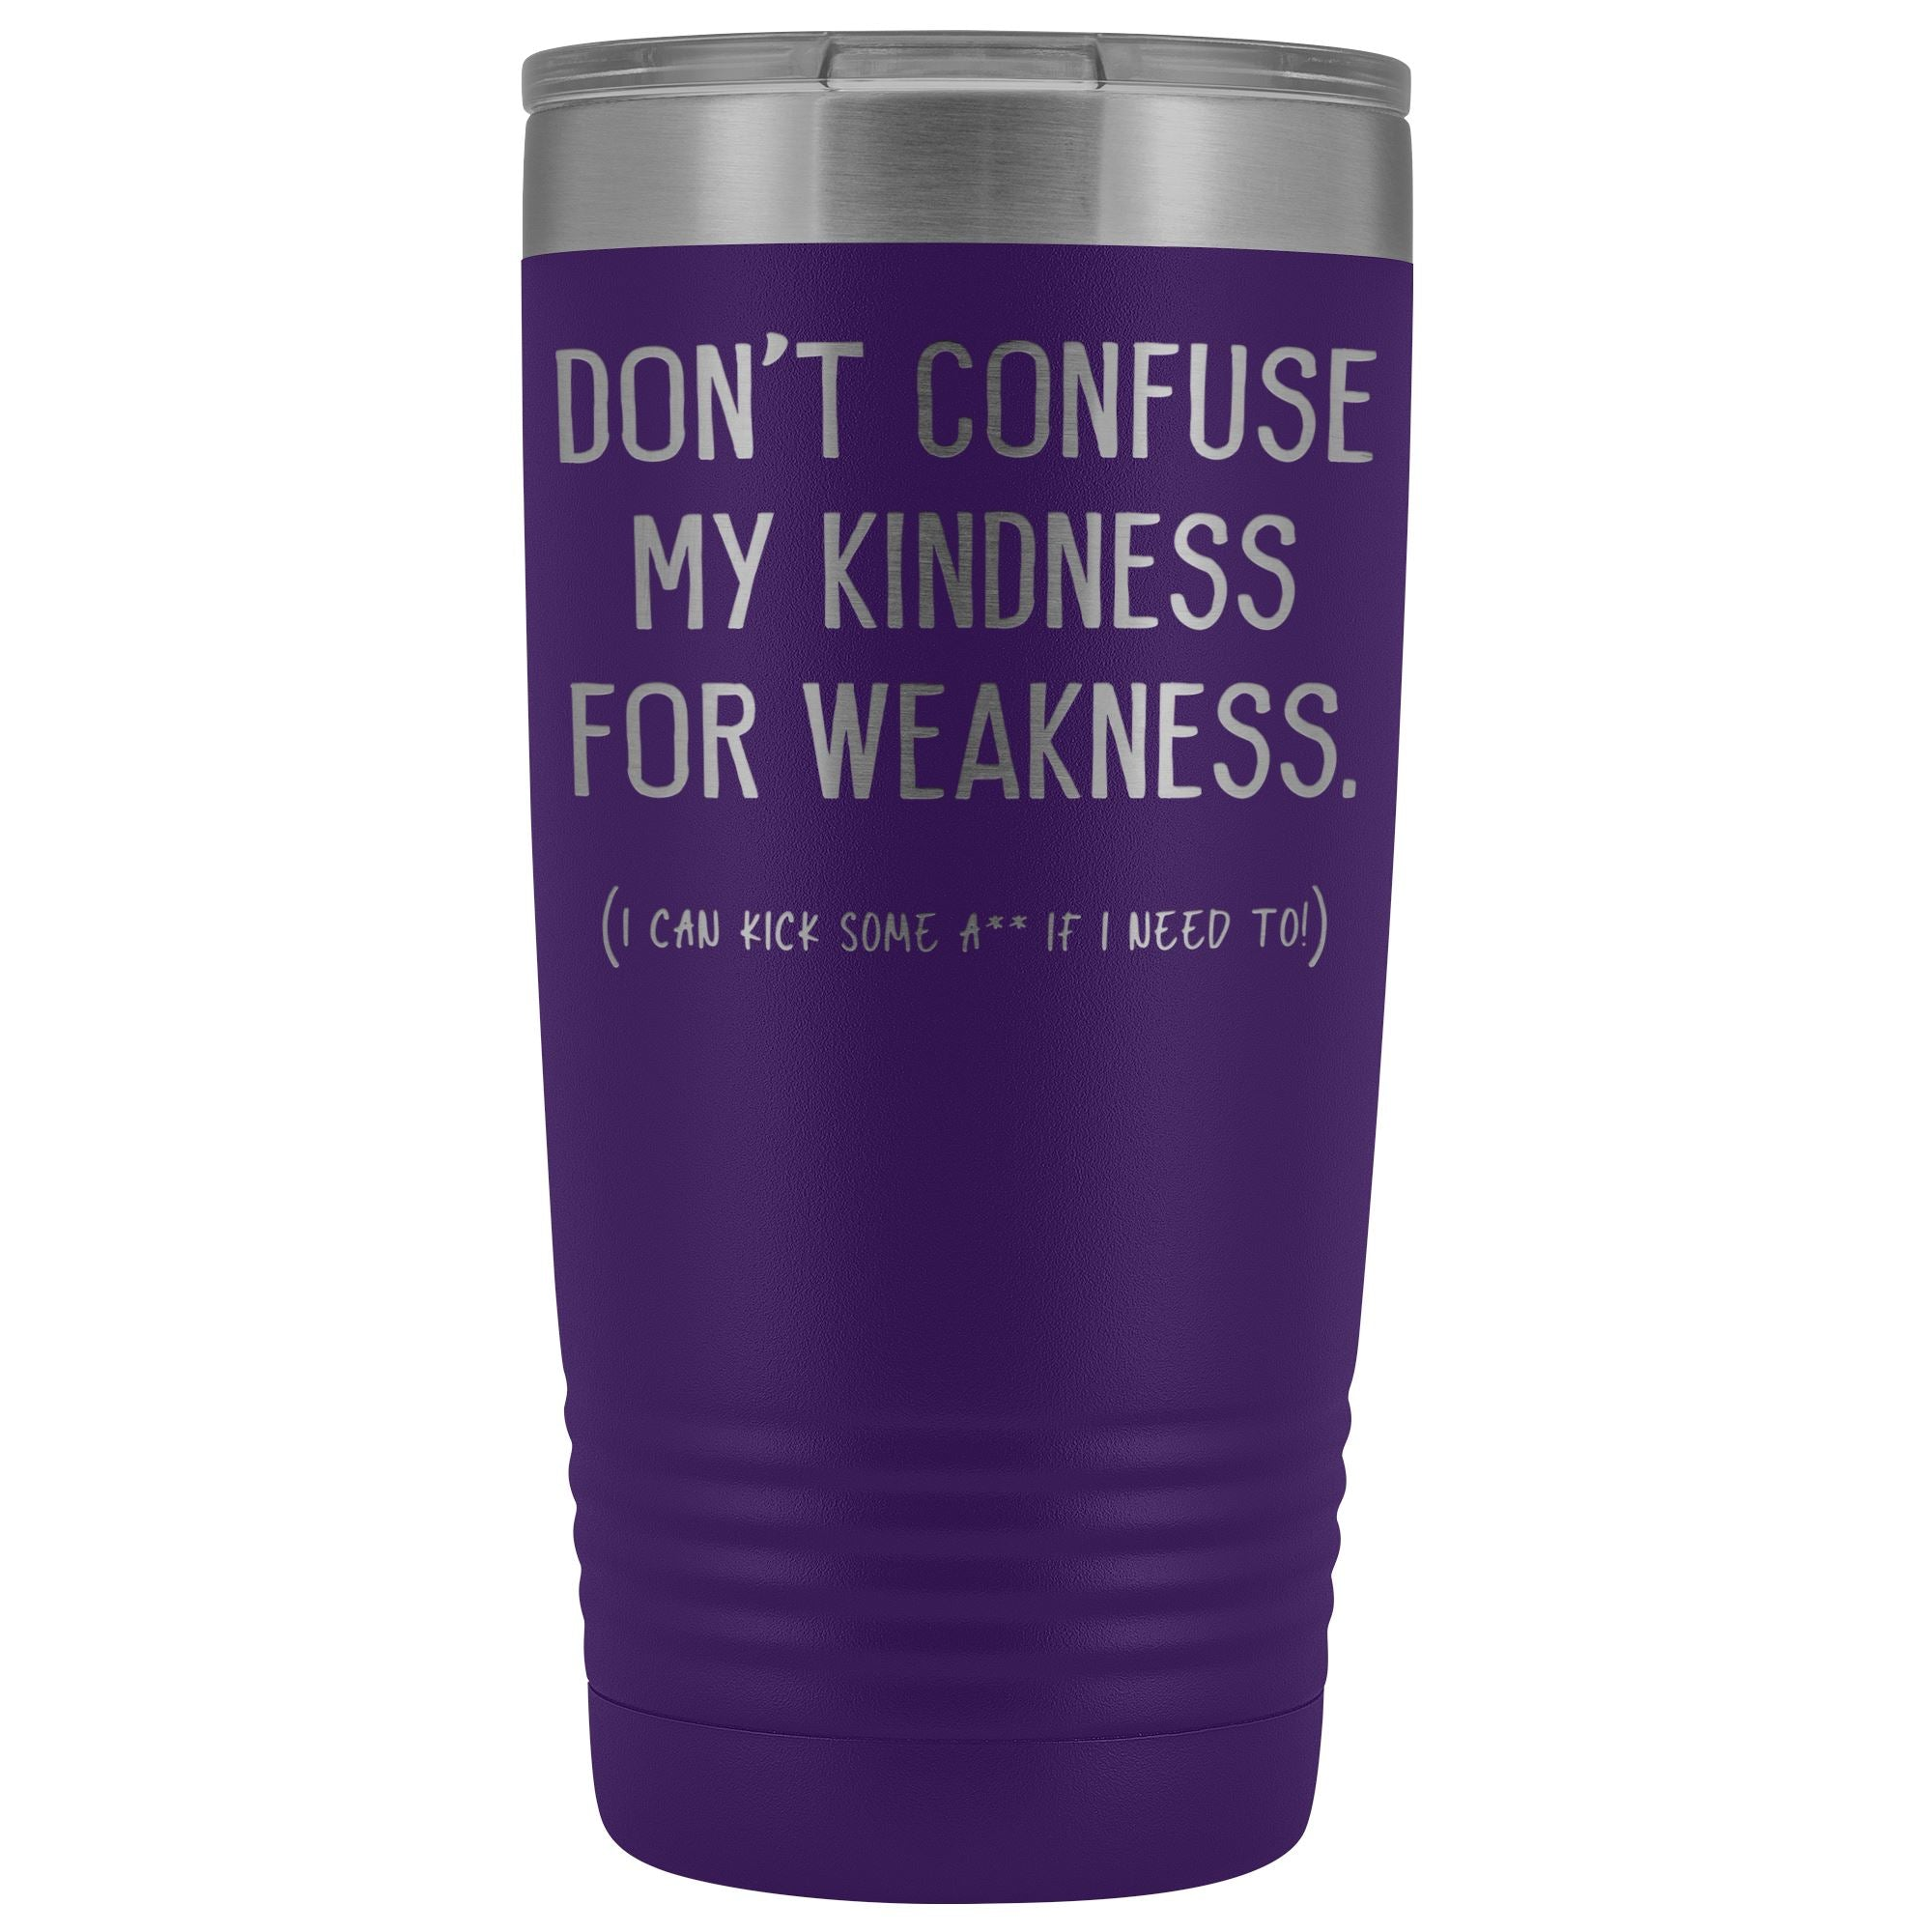 Don't Confuse My Kindness For Weakness • 20oz. Insulated Tumbler Tumblers teelaunch Purple